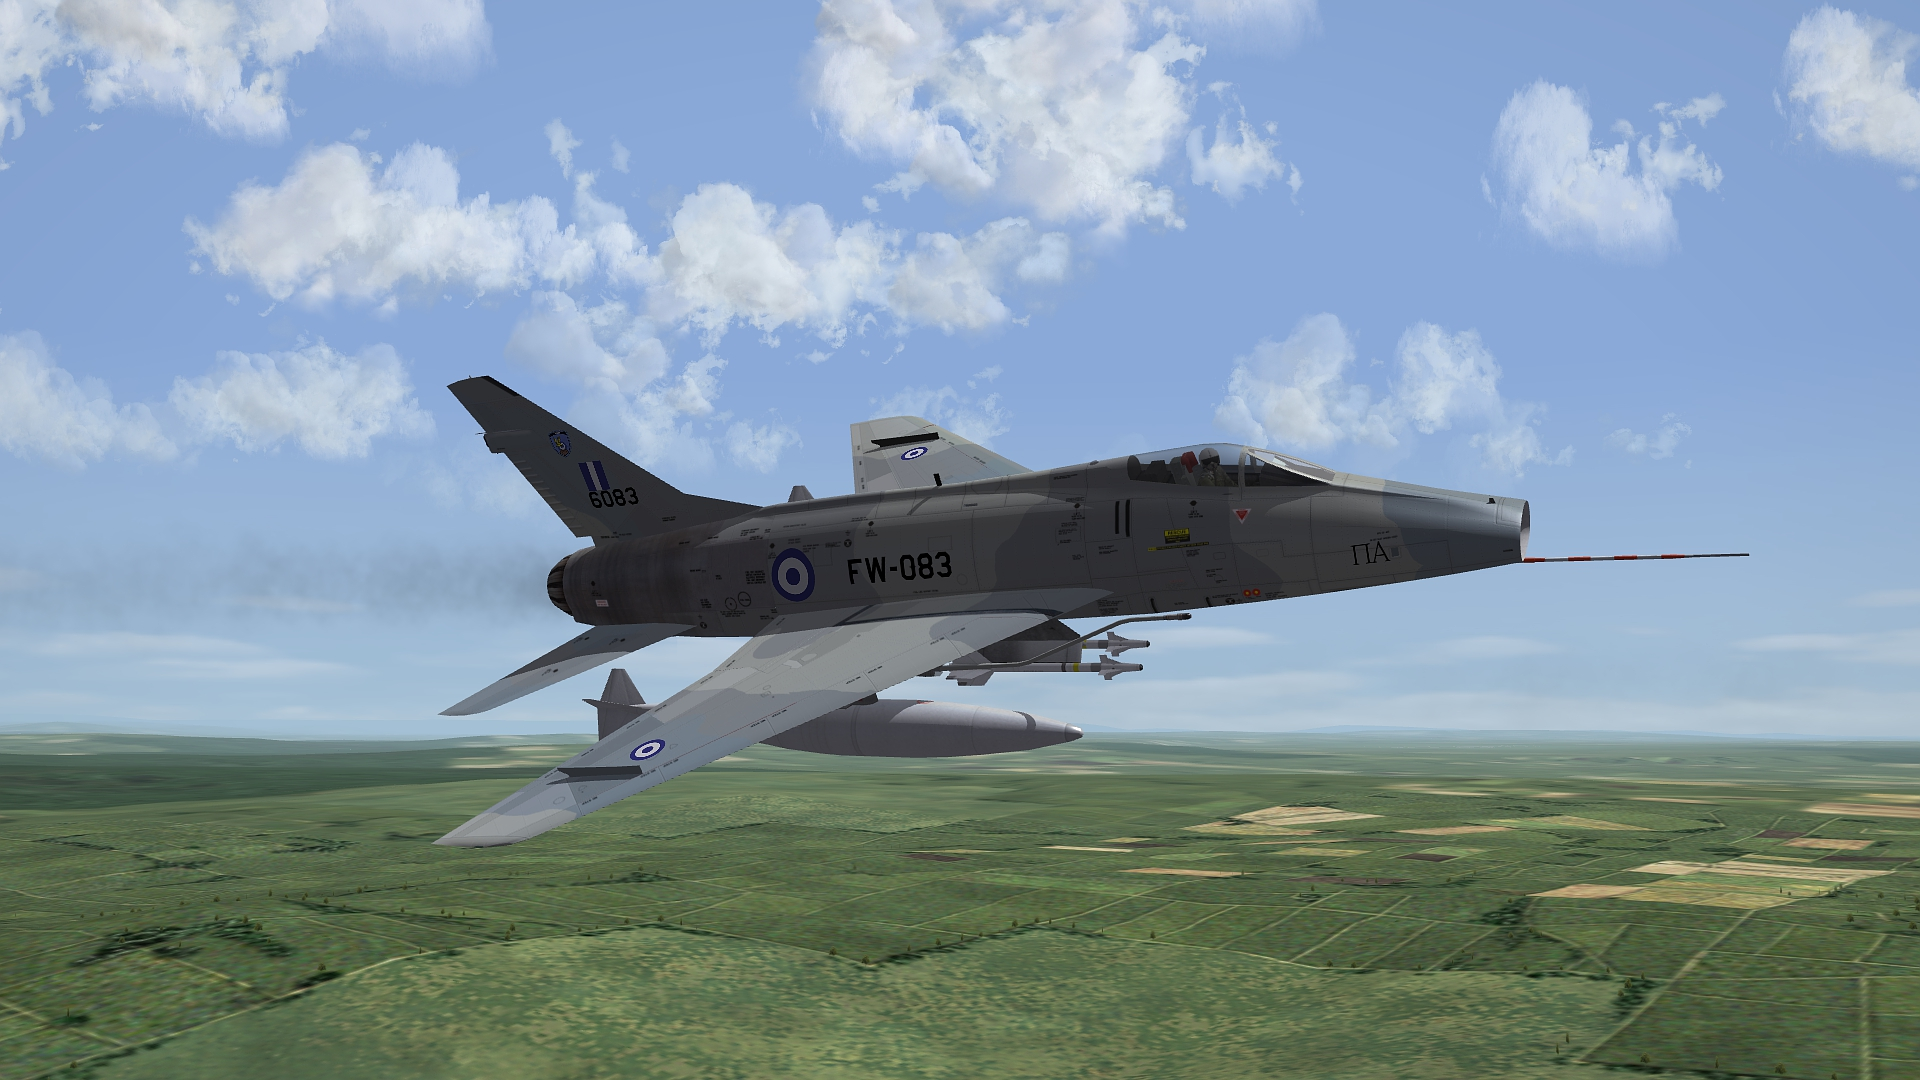 [Fictional] North American F-100H Super Sabre for STRIKE FIGHTERS 2